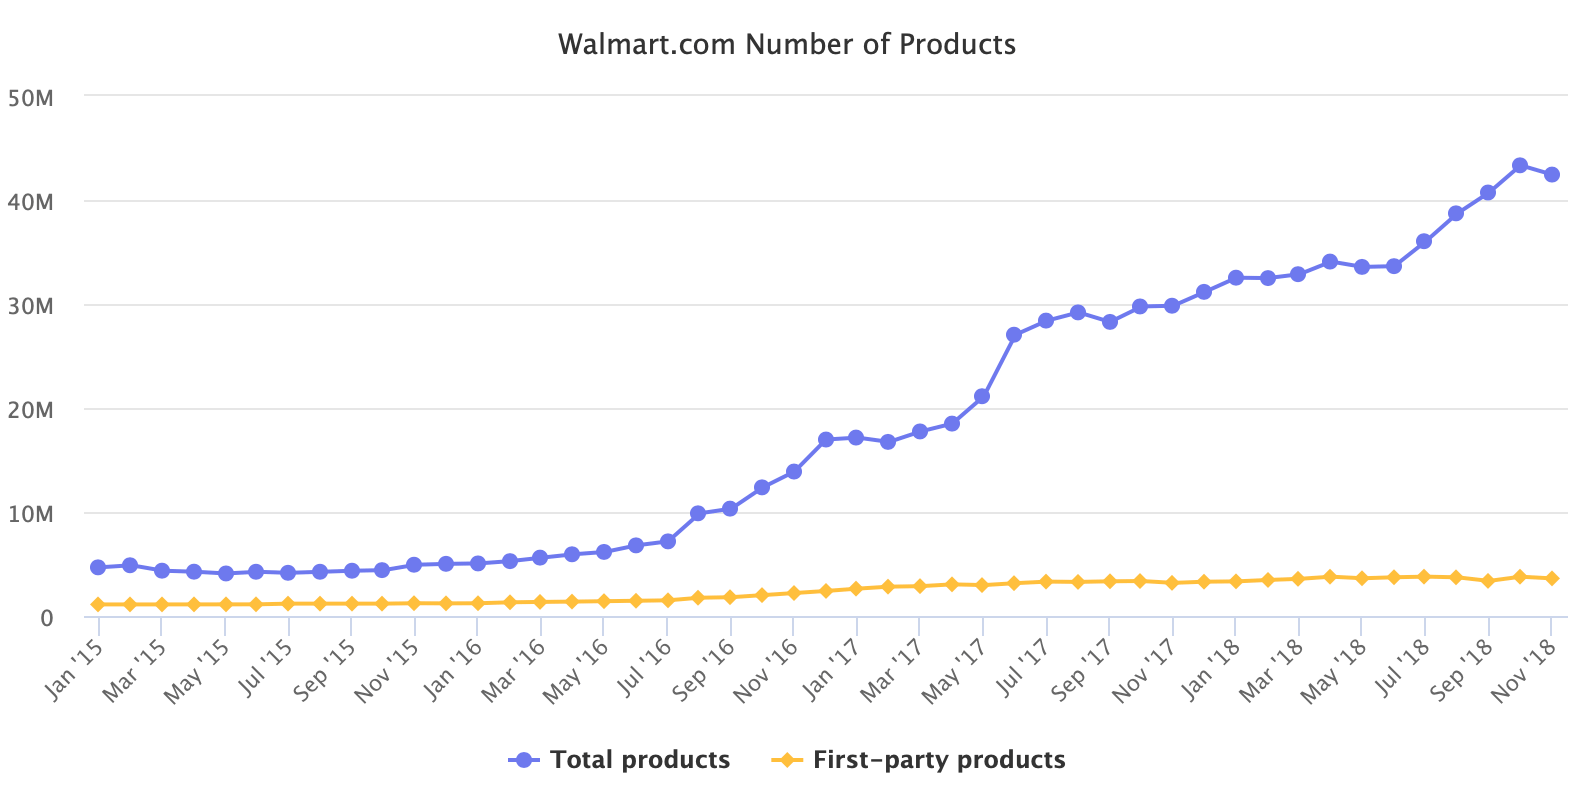 Walmart.com Number of Products